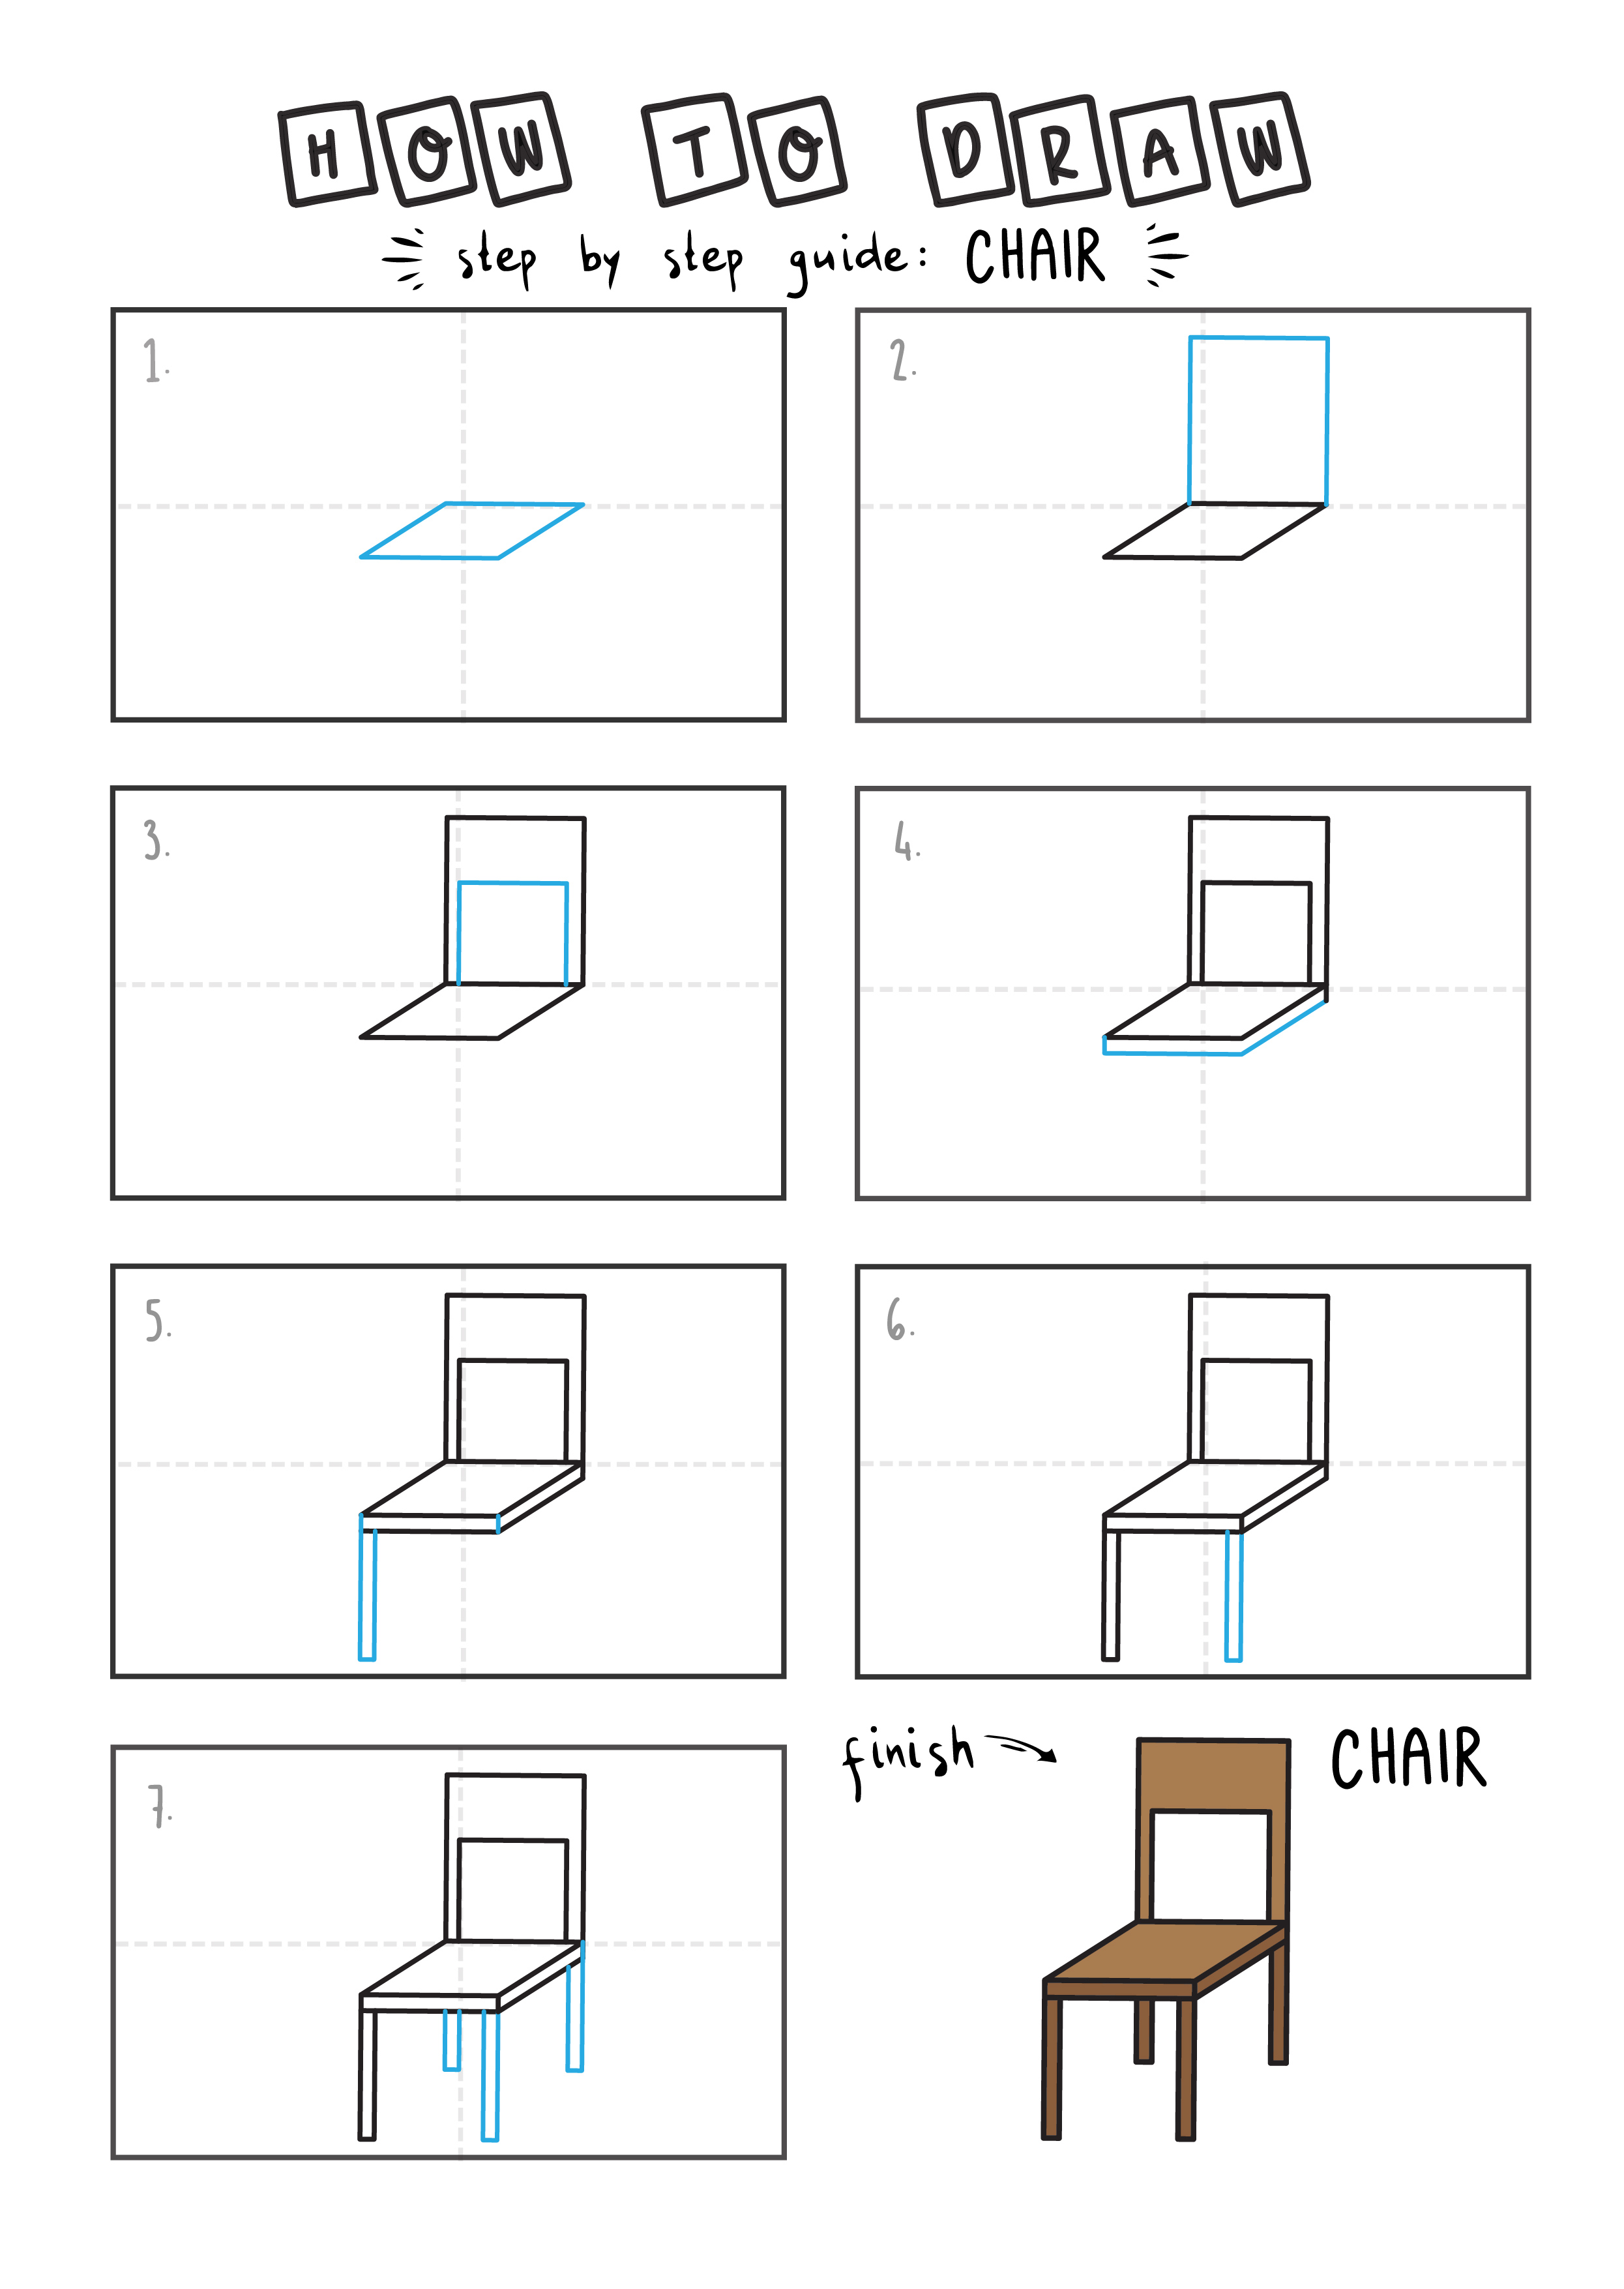 HOW TO DRAW A CHAIR FOR YOUNG KIDS EASY DRAWINGS ART GUIDE STEP BY STEP